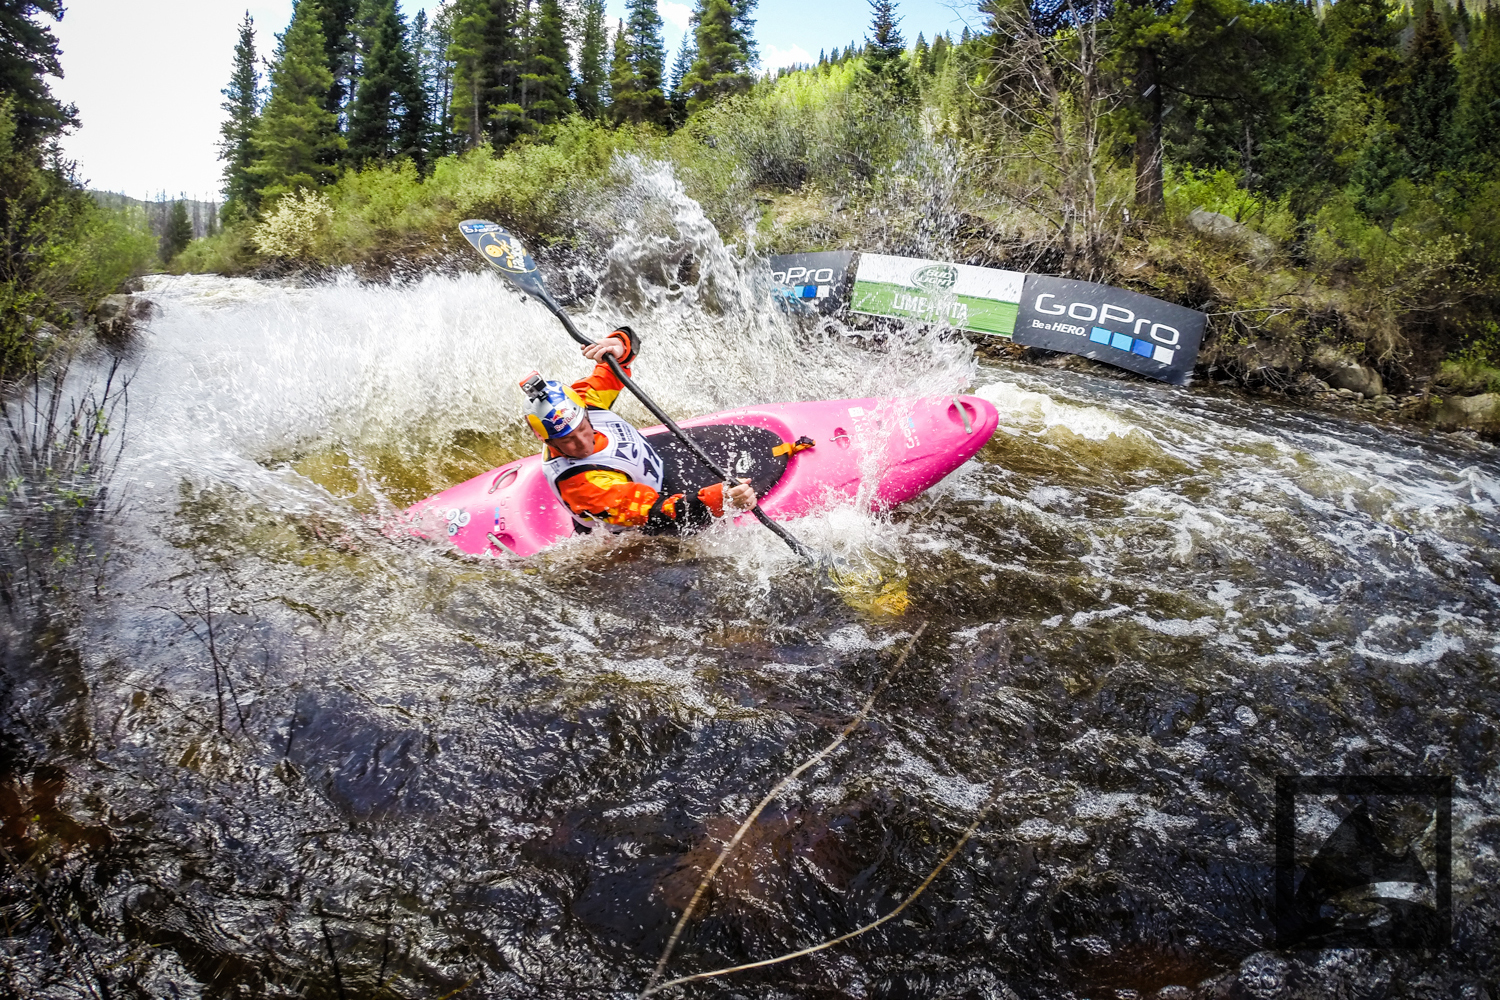 With warm temperatures in Vail this weekend, the water raged down Class V Homestake Creek on Friday, where more than 50 kayakers raced at the Bud Light Lime-A-Rita Steep Creek Championships on the first day of the GoPro Mountain Games. Martina Wegman won the women's race for the third straight year, while Issac Levinson beat world champion Dane Jackson to win the men's race.